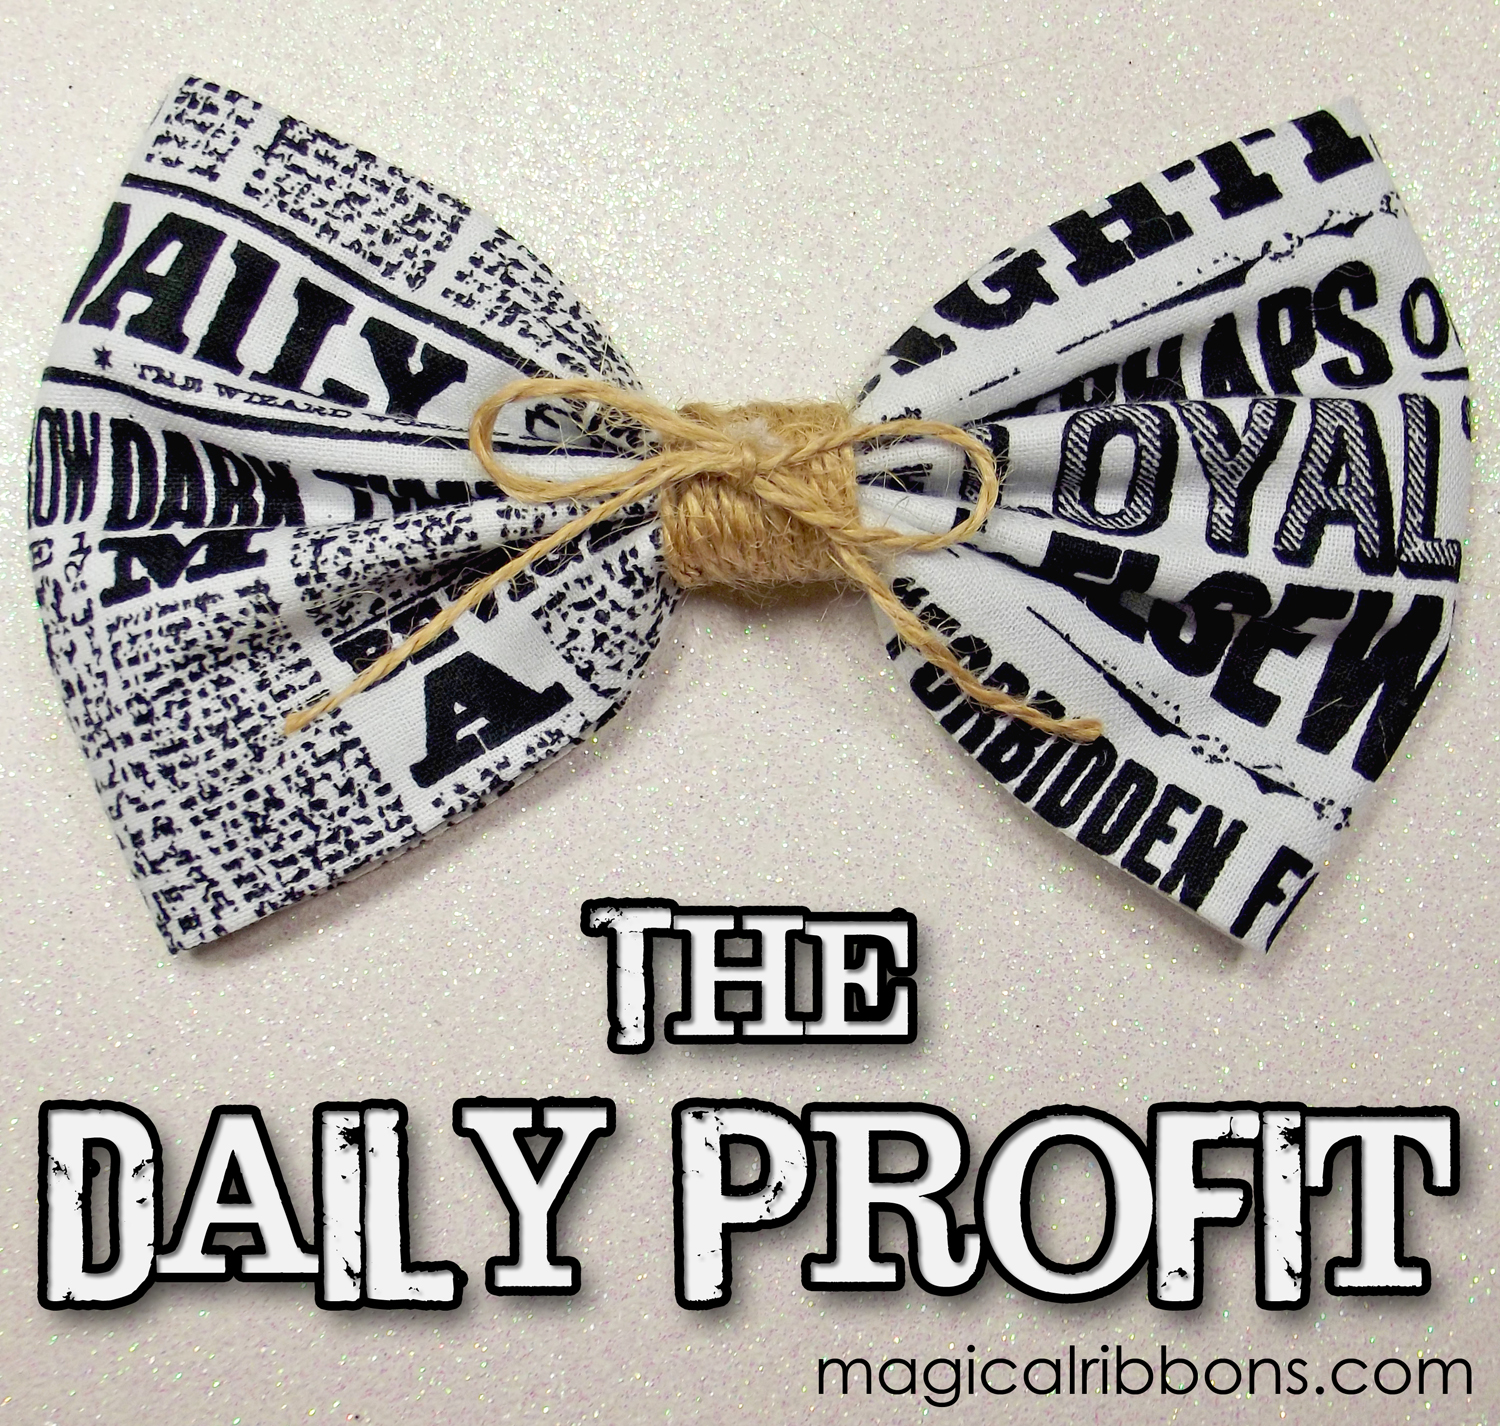 The Daily Profit Bow